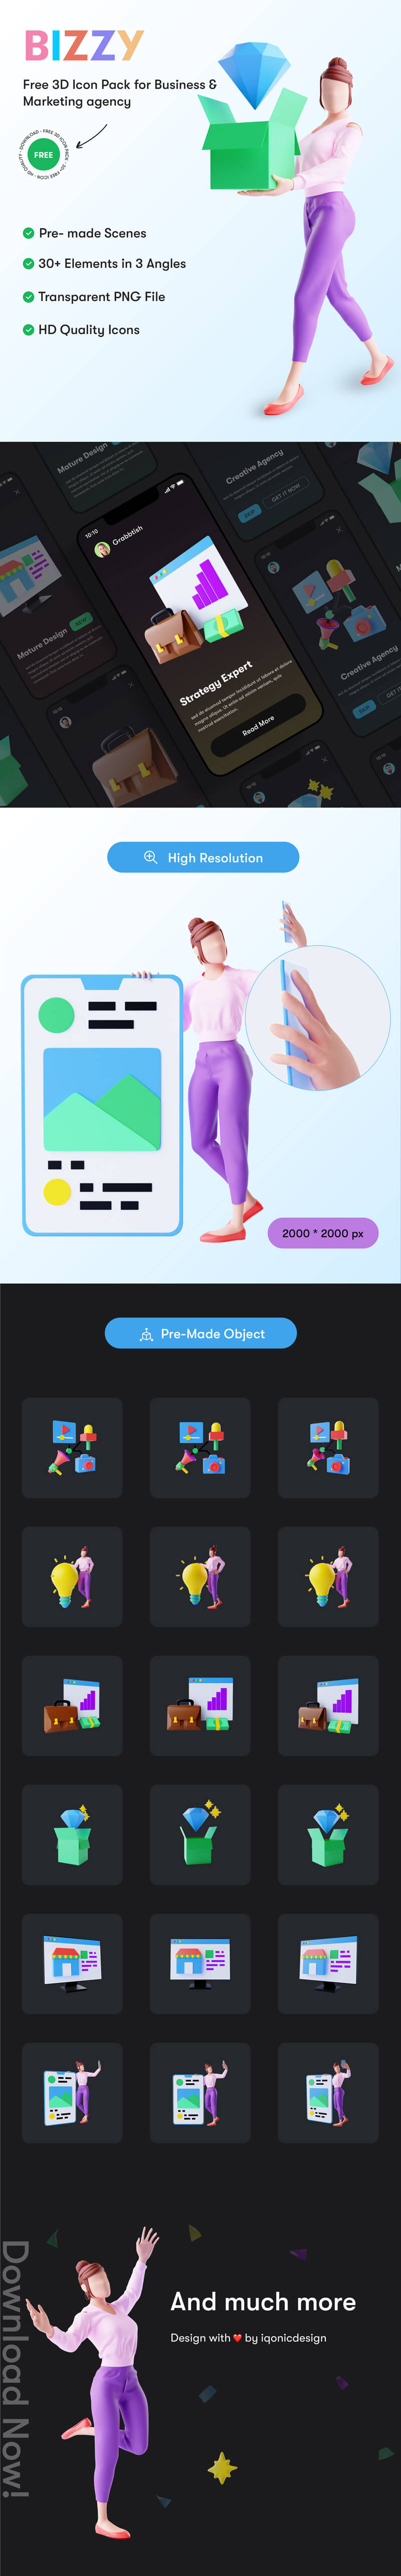 Free 3D Icon Pack for Business and Marketing agency   Bizzy   Iqonic Design free 3d icon pack for business and marketing agency Bizzy 3D bixxy2